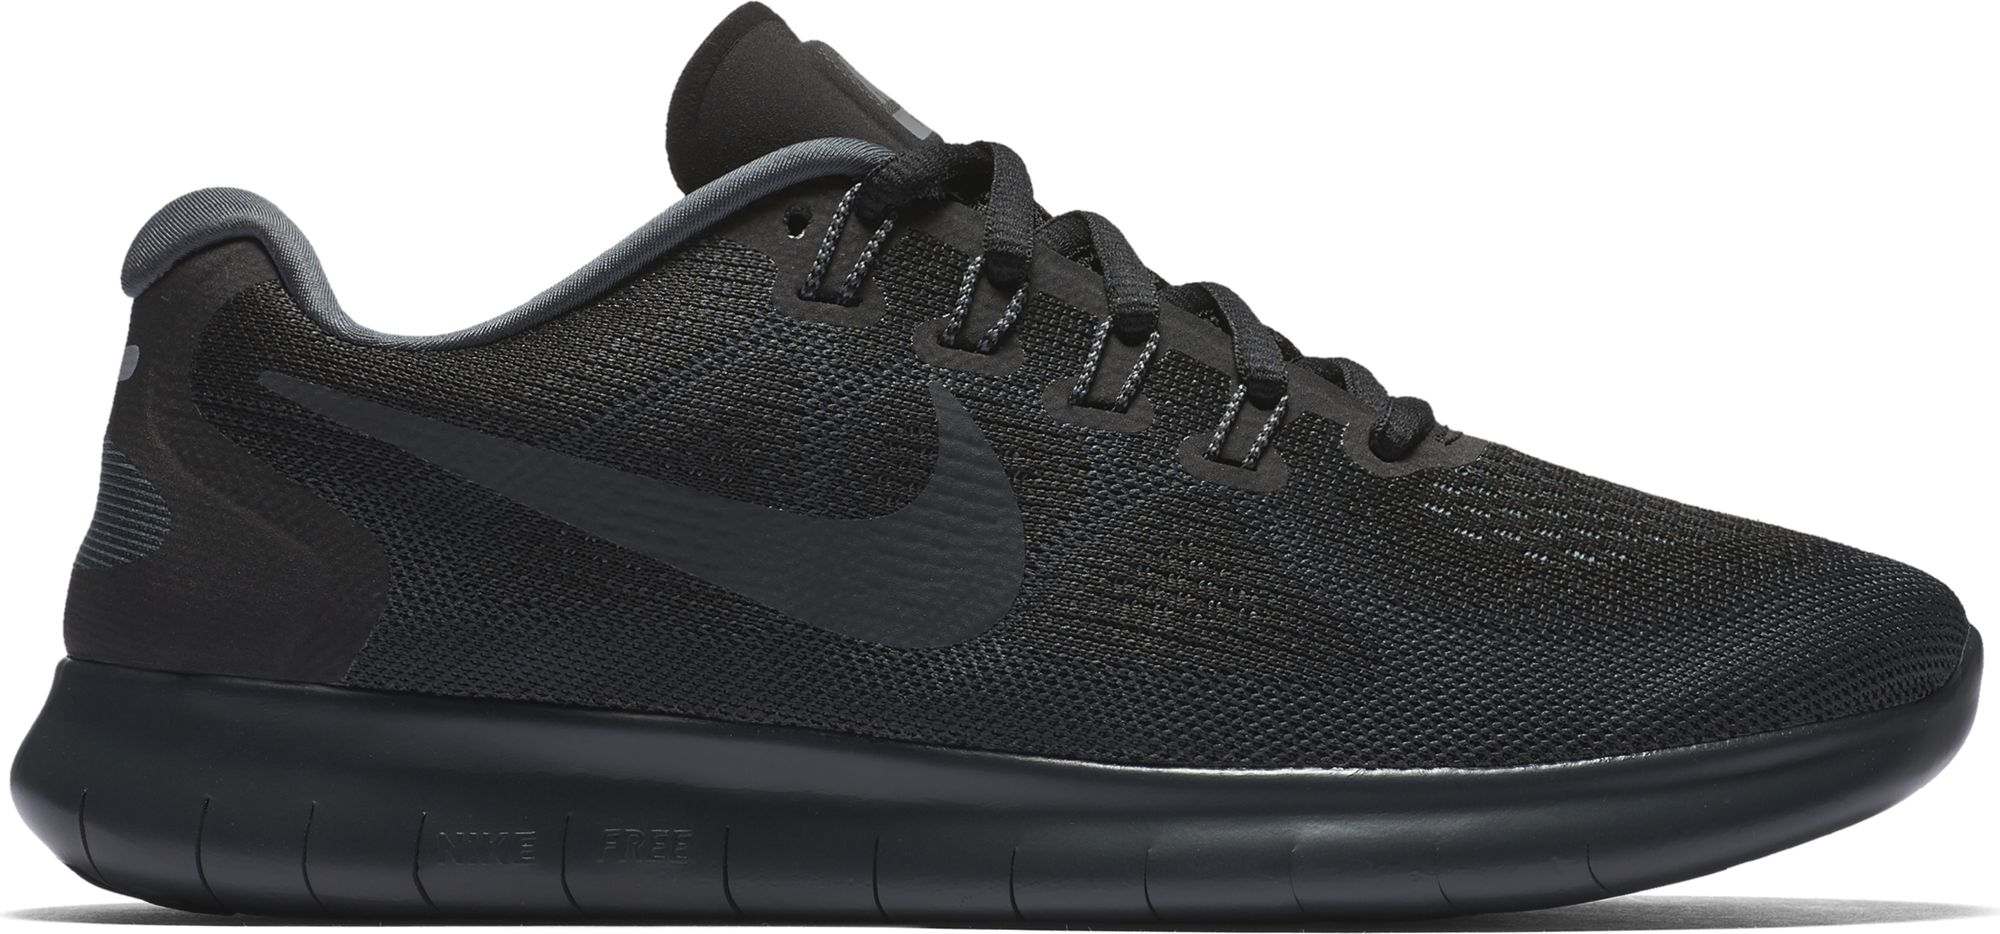 info for 9726e 34108 Nike Women's Free Run Shoe